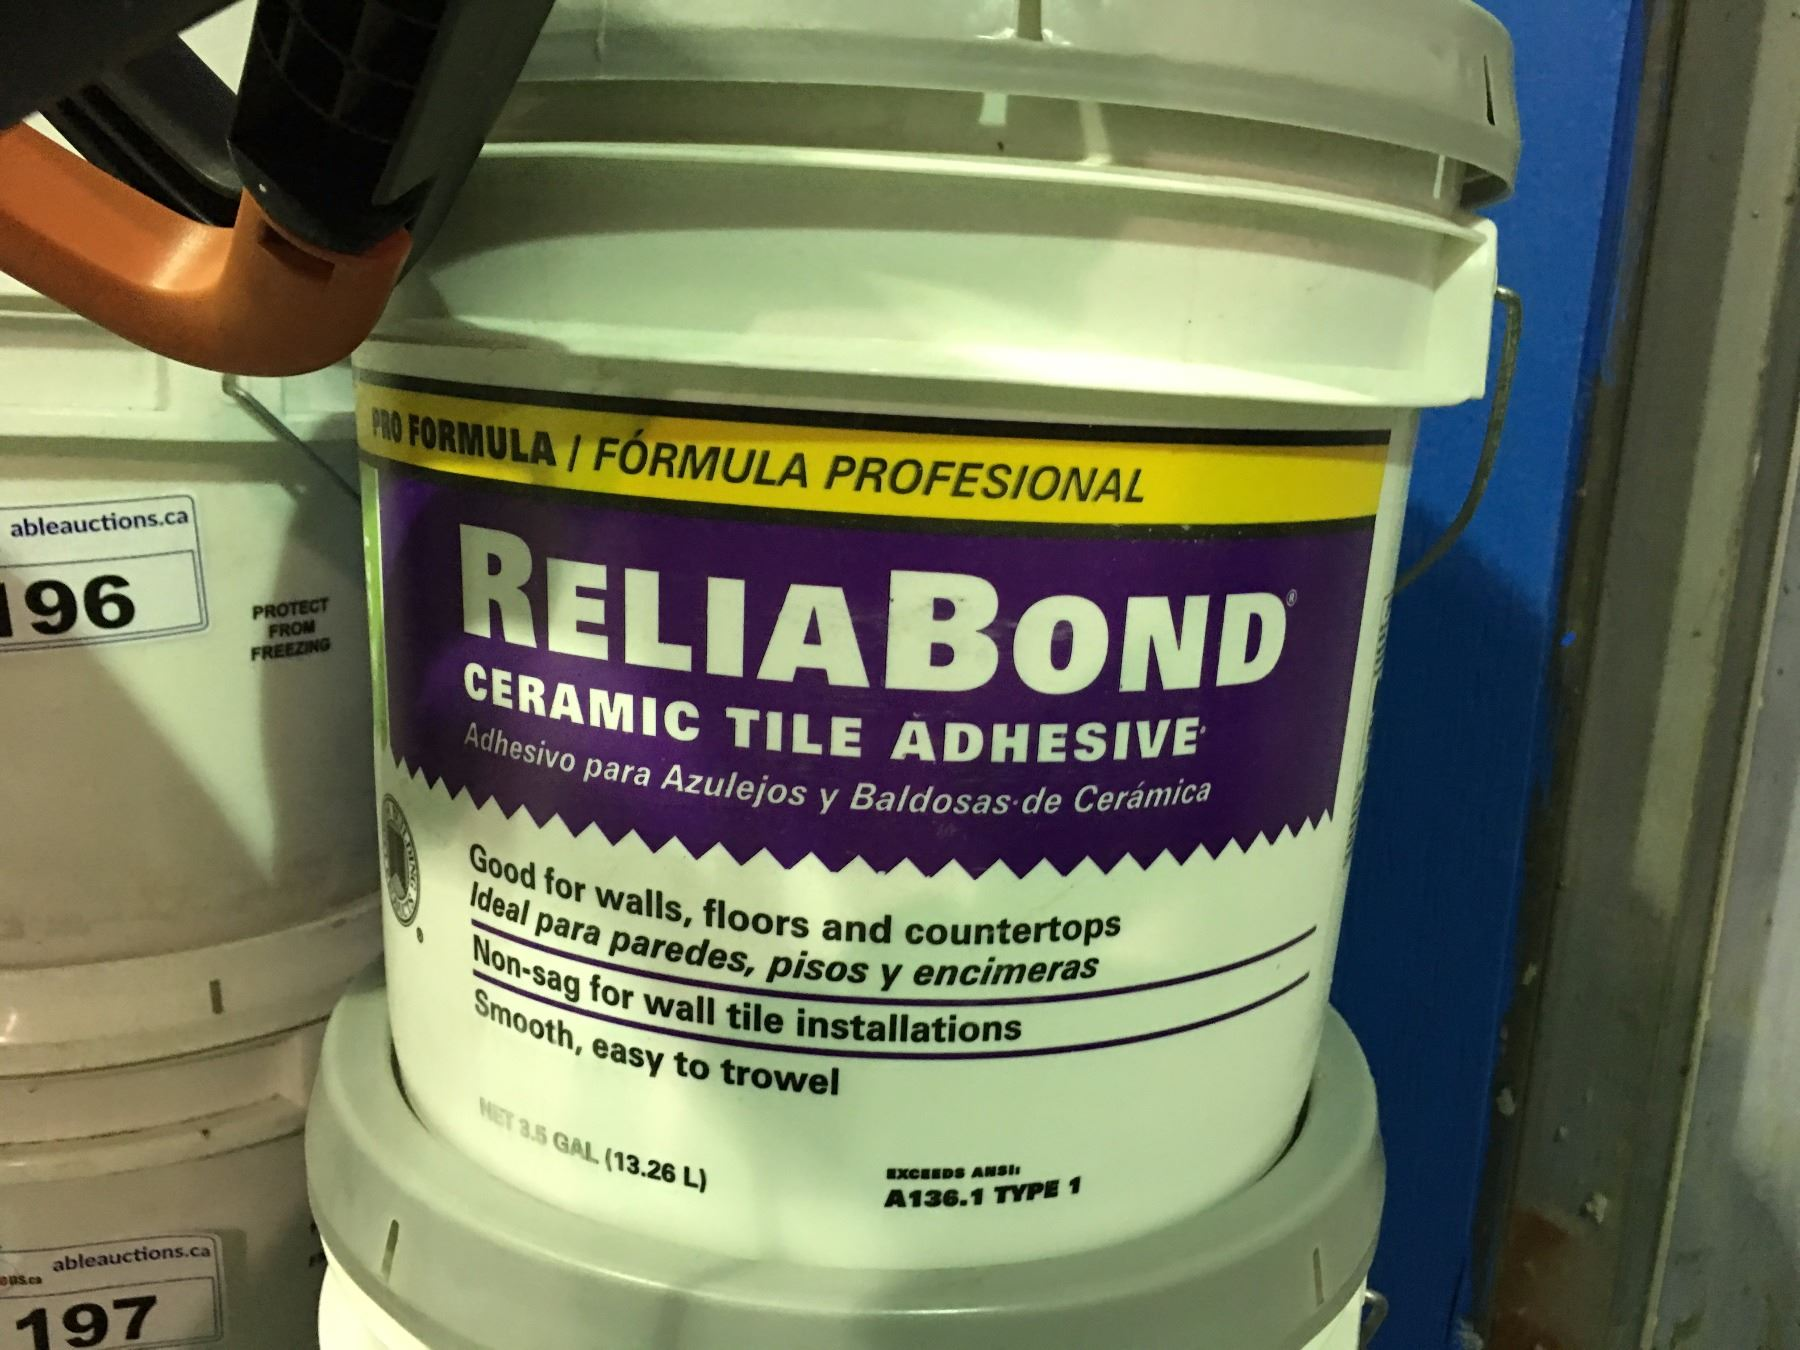 One 35 Gallon Container Of Reliabond Ceramic Tile Adhesive